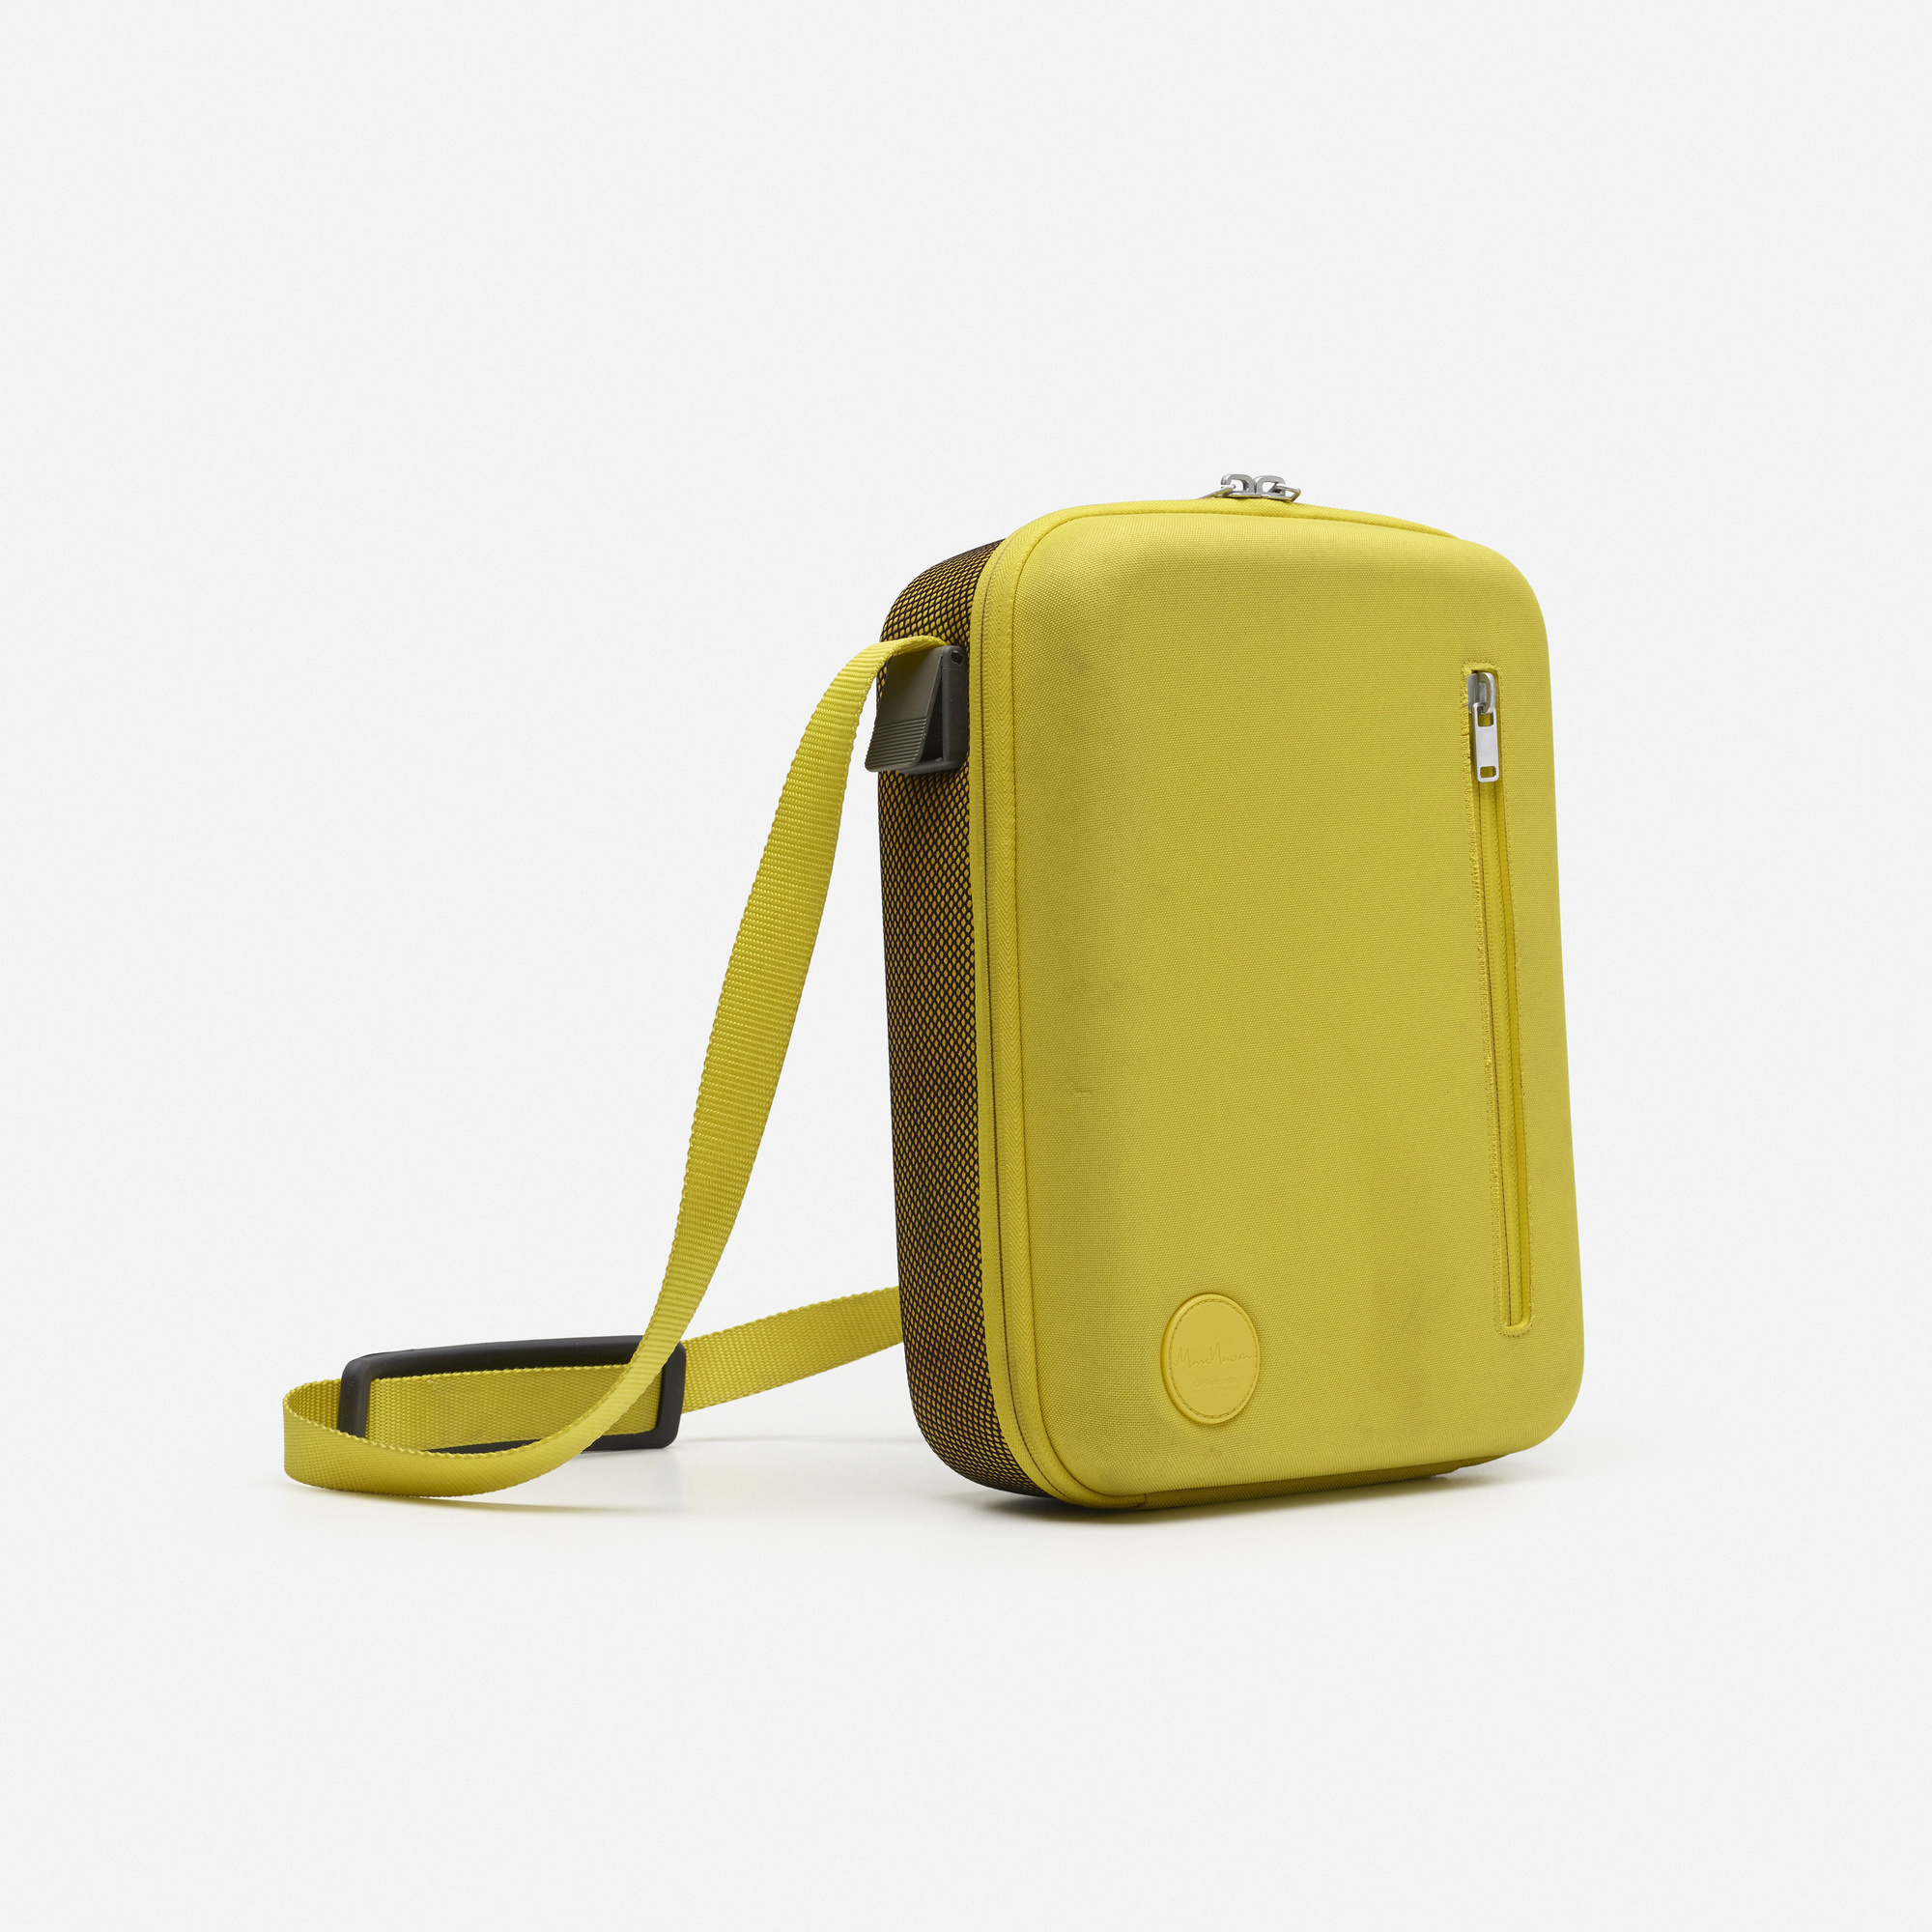 639: Marc Newson / Scope bag (1 of 1)